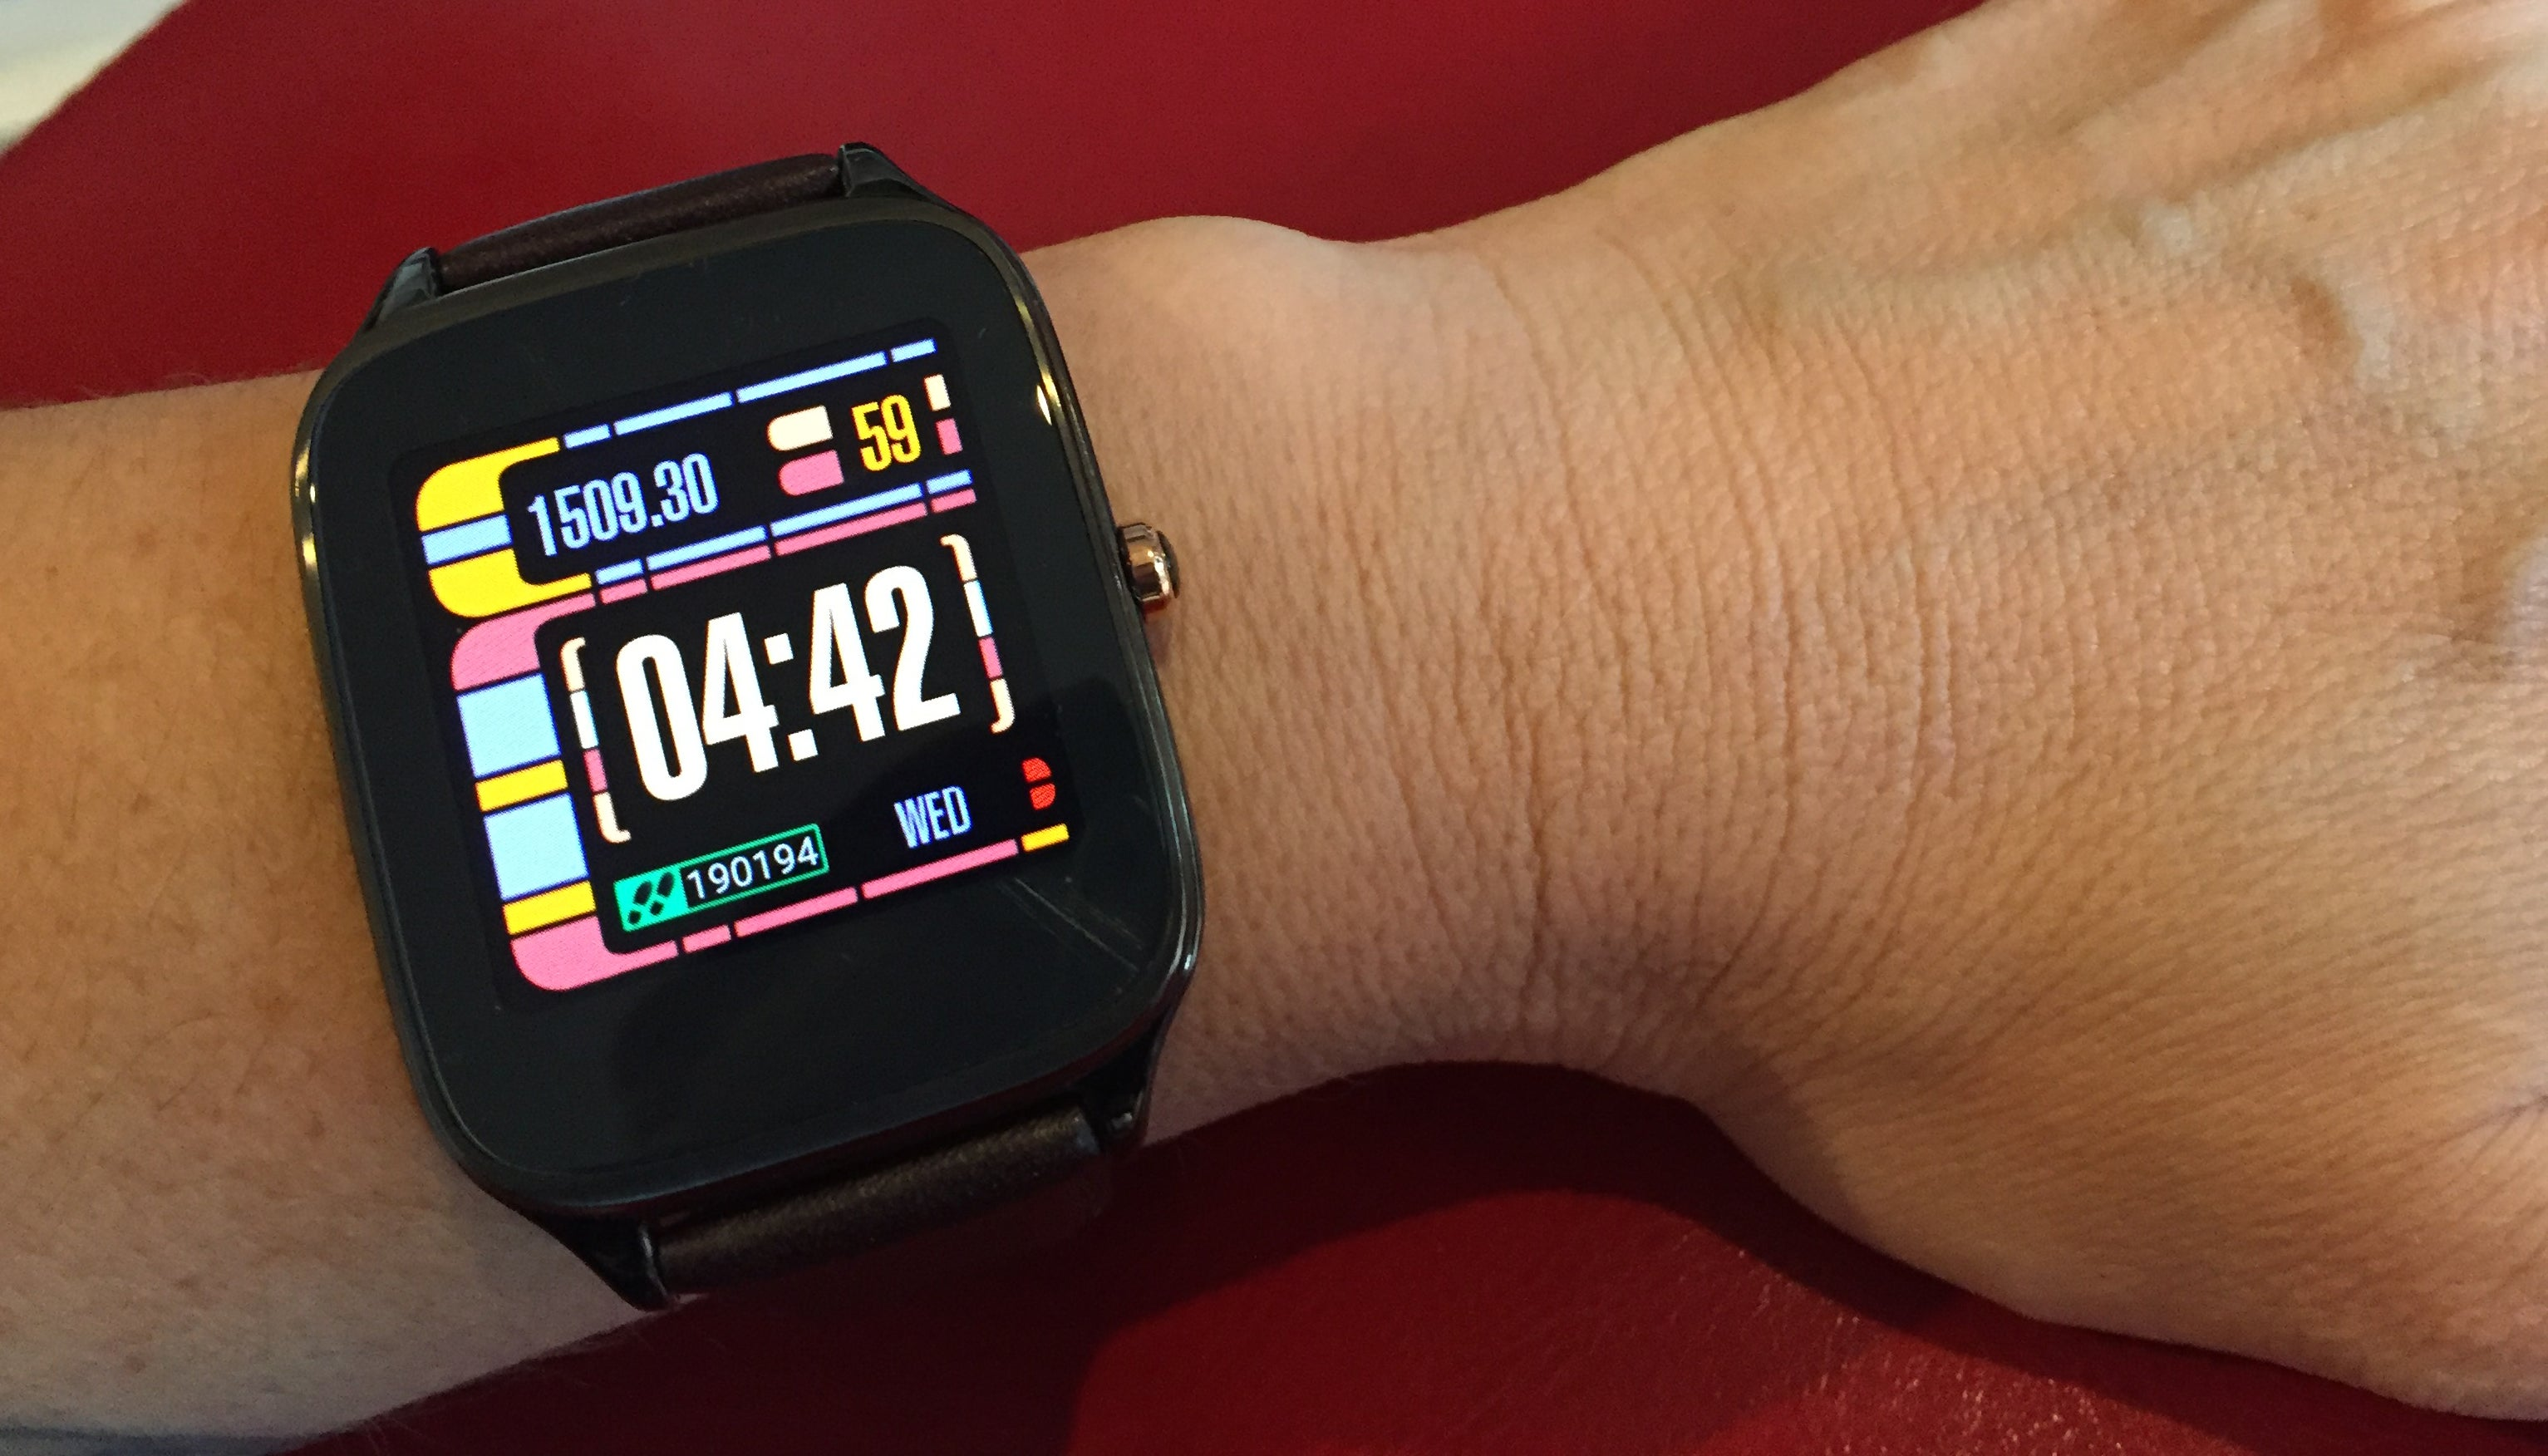 ZenWatch 2 Review: A Cheap Way to Get Started With Smartwatches